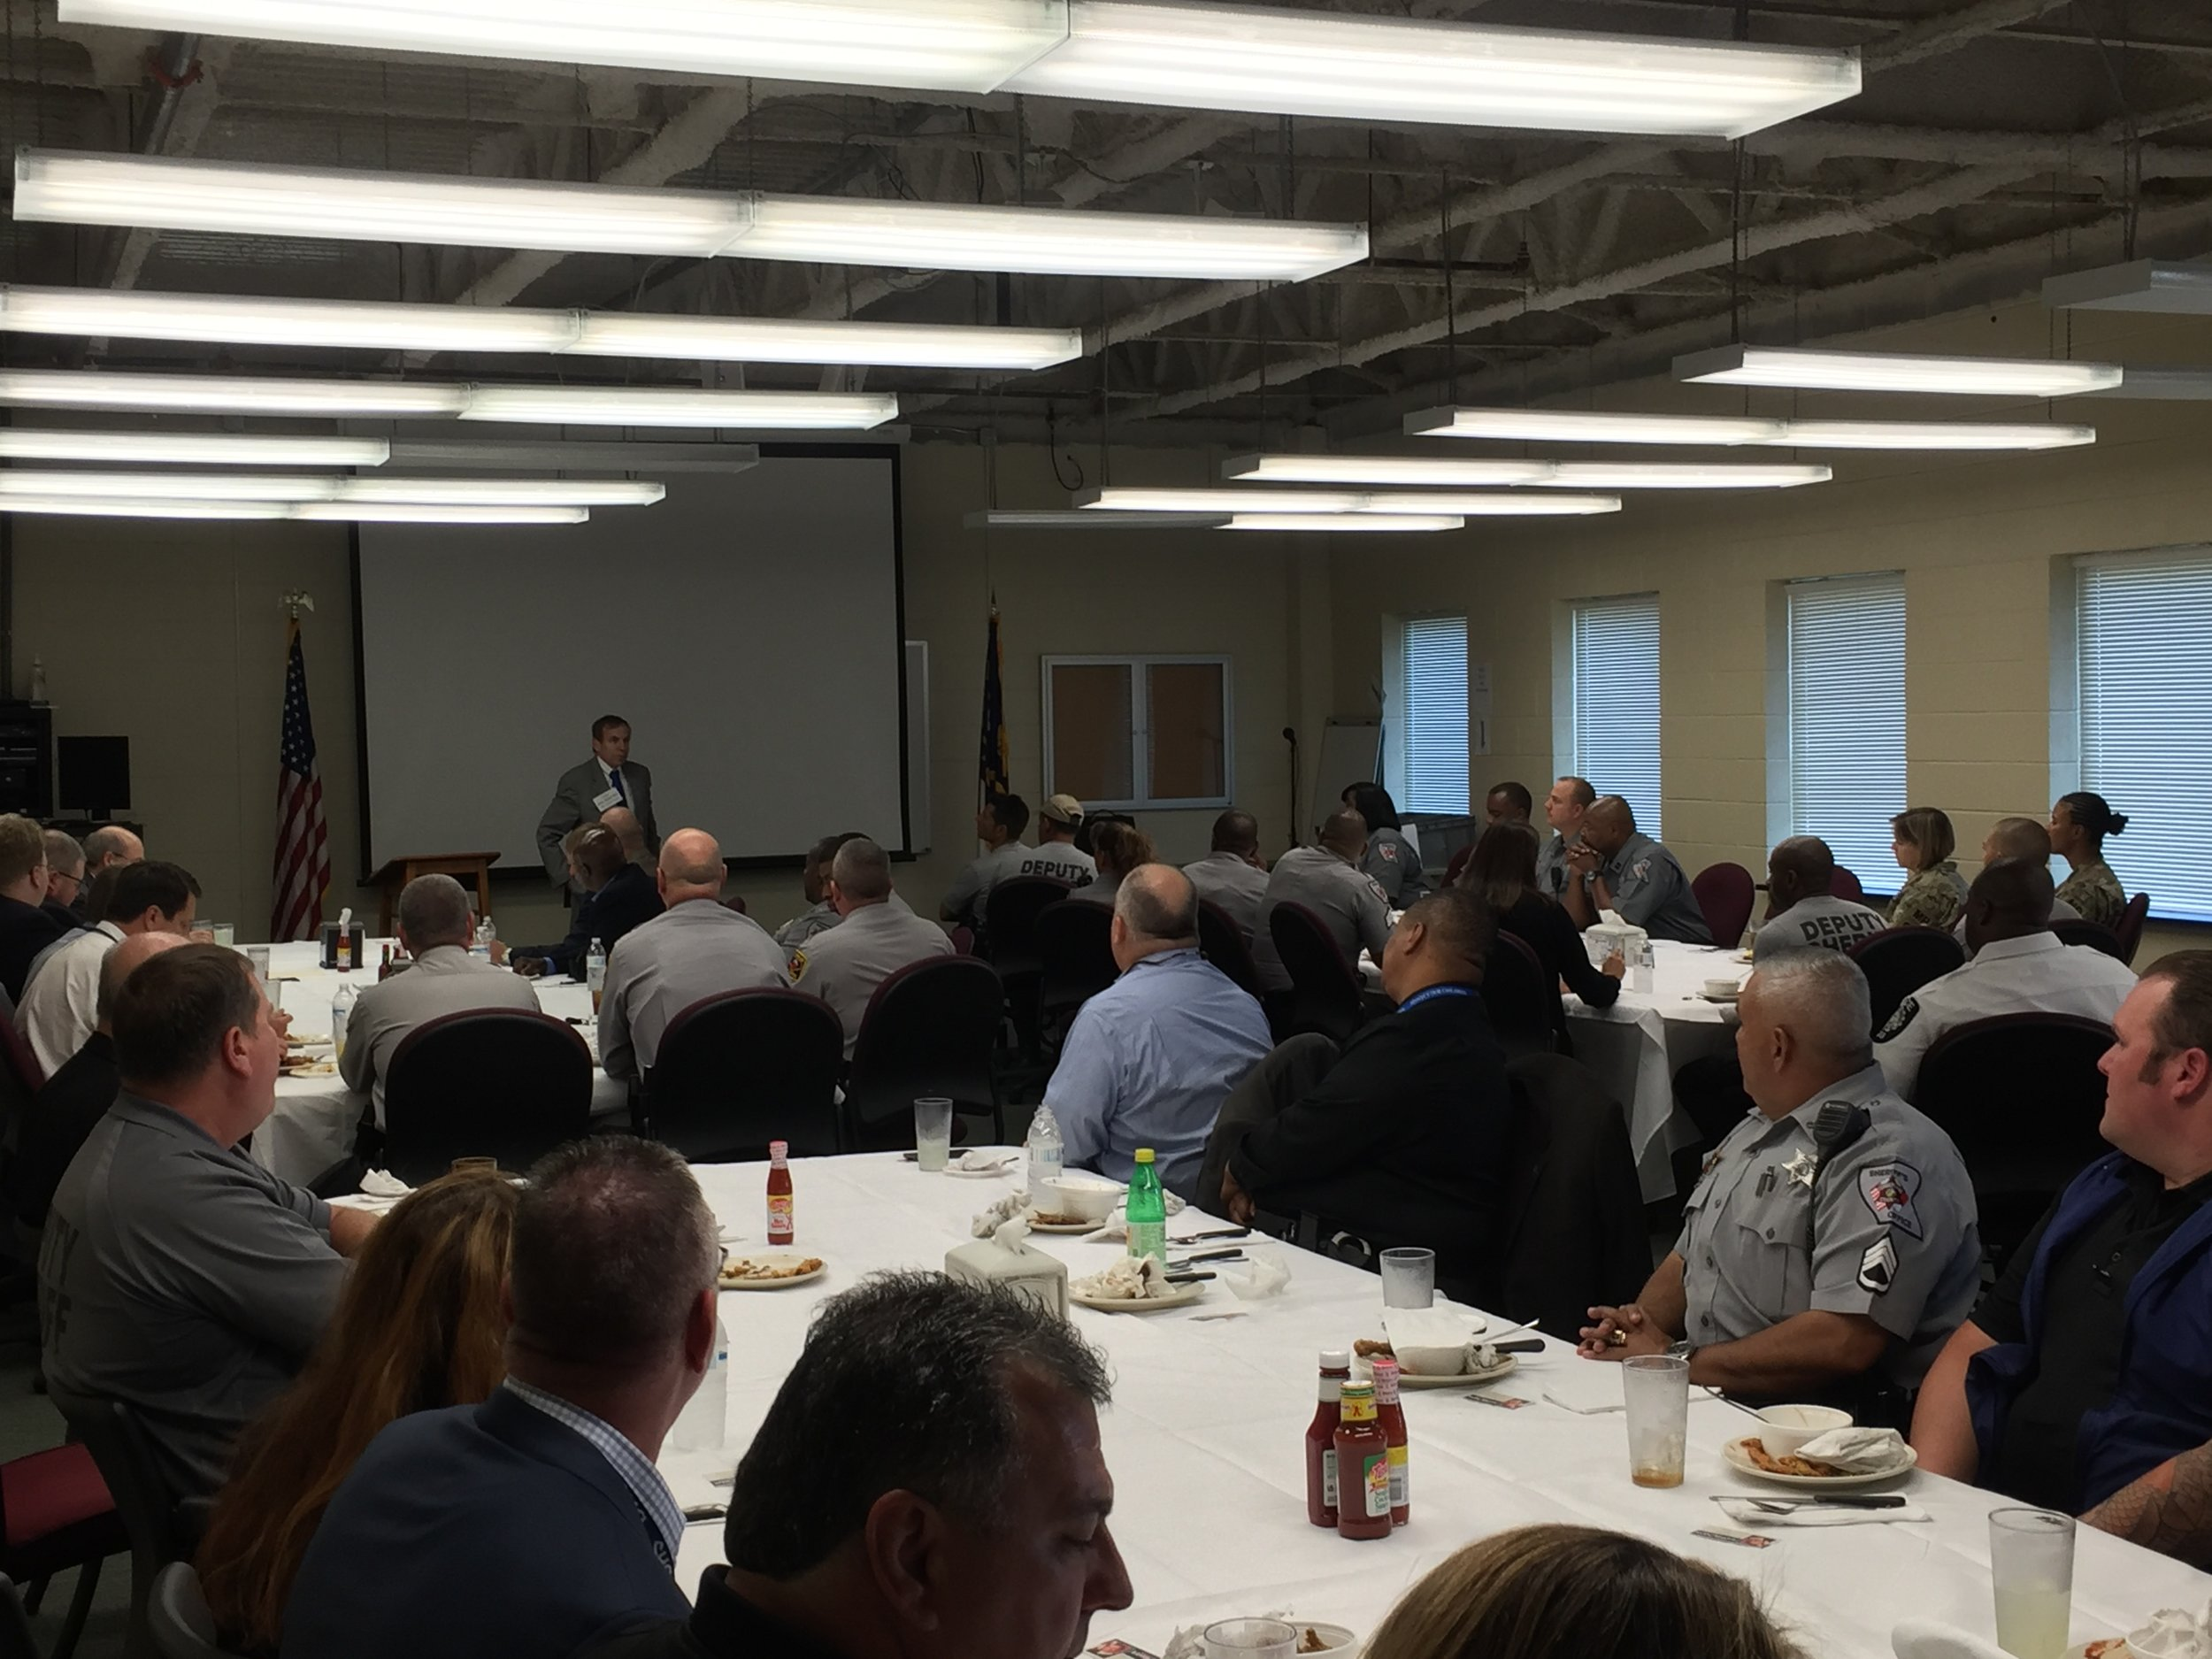 Speaking with state and federal law enforcement officials in Cumberland County, October 3, 2016.